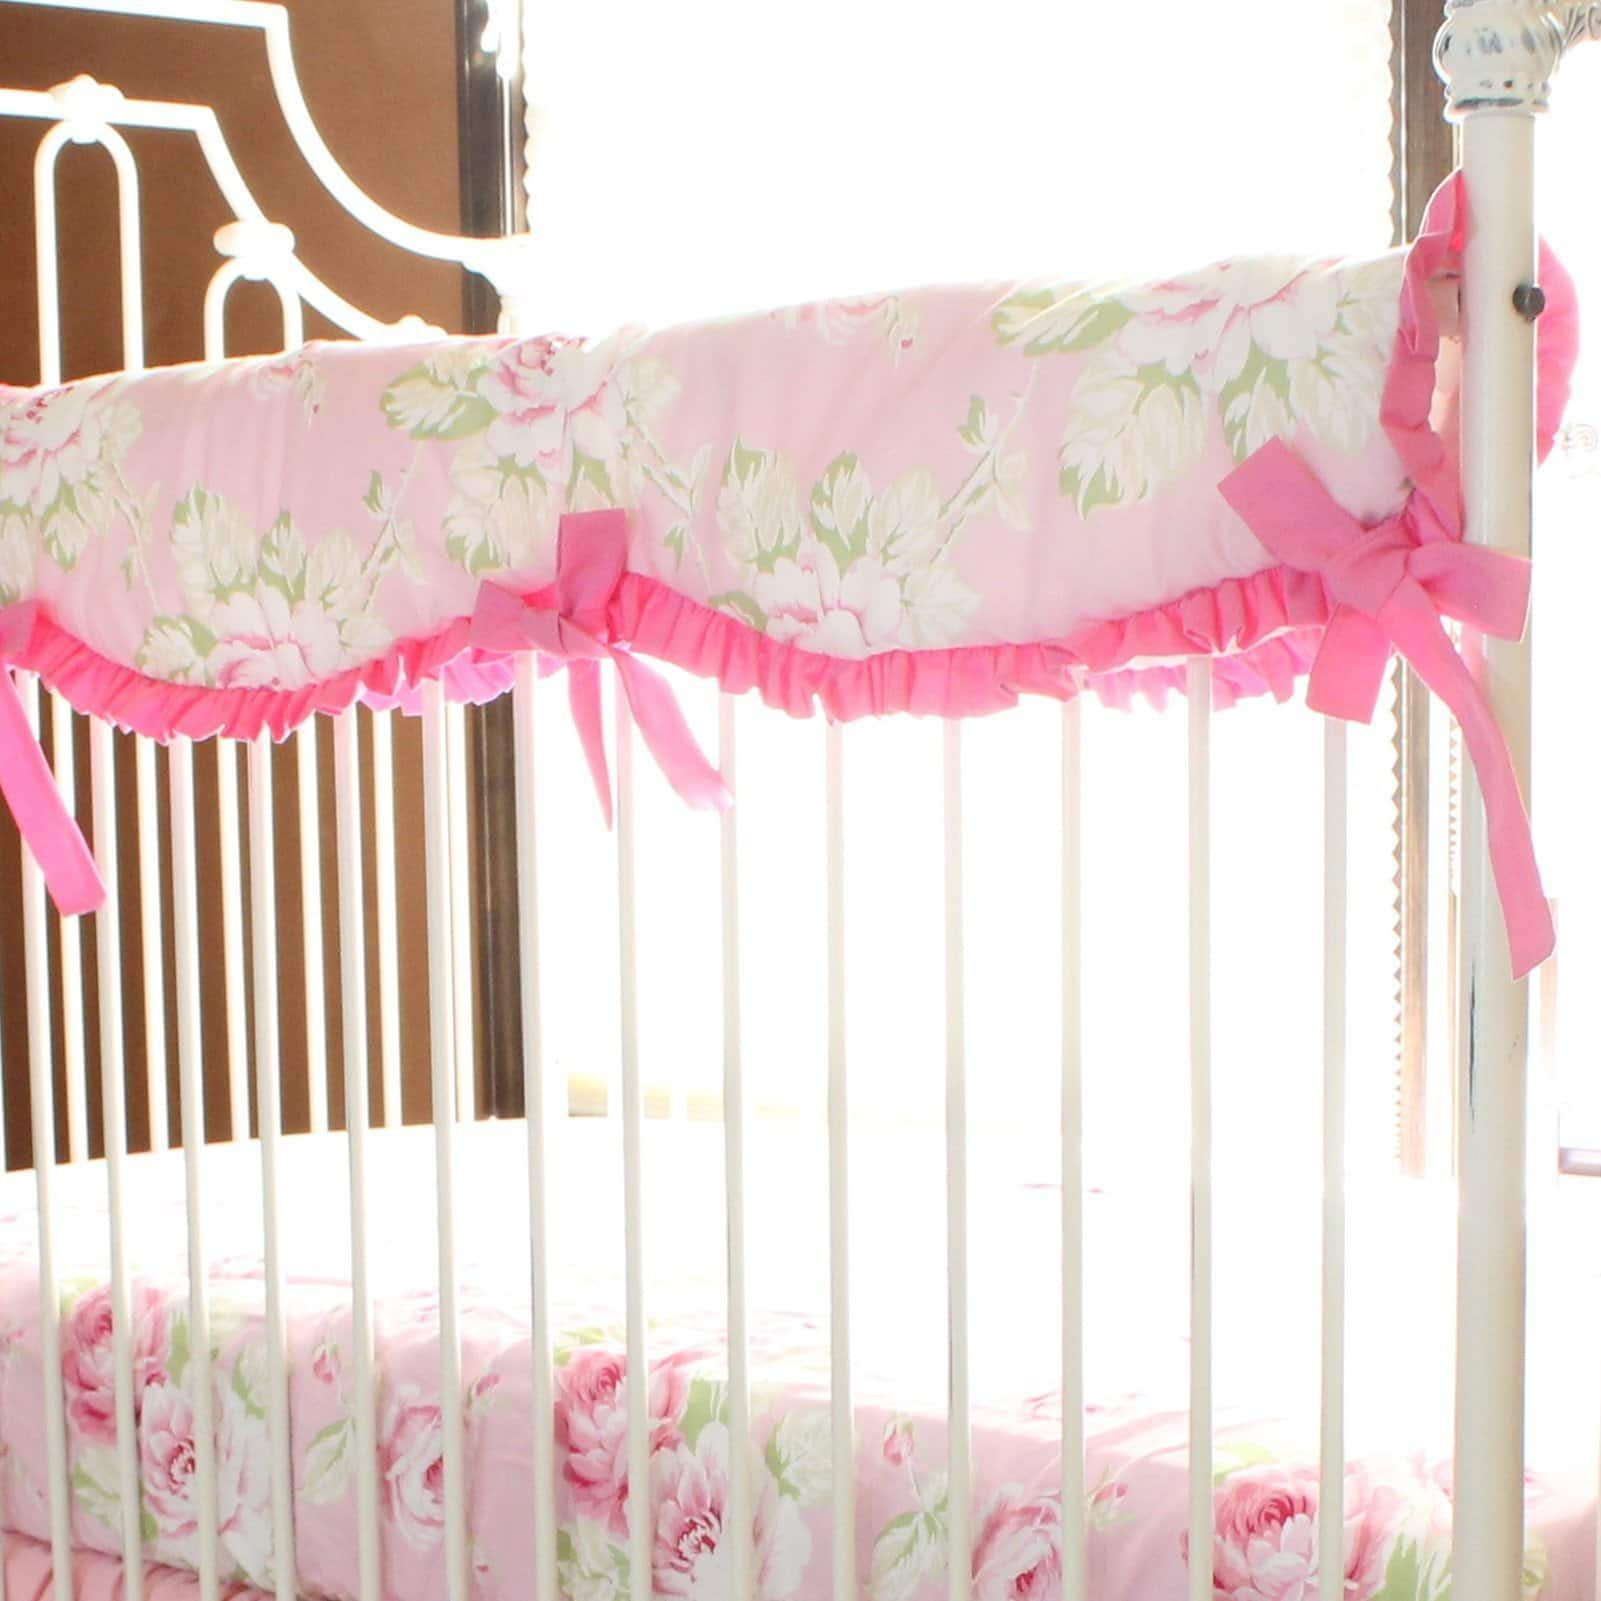 Crib Rail Cover | Shabby Chic Roses Ruffle-Crib Rail Cover-Bold Bedding-Jack and Jill Boutique